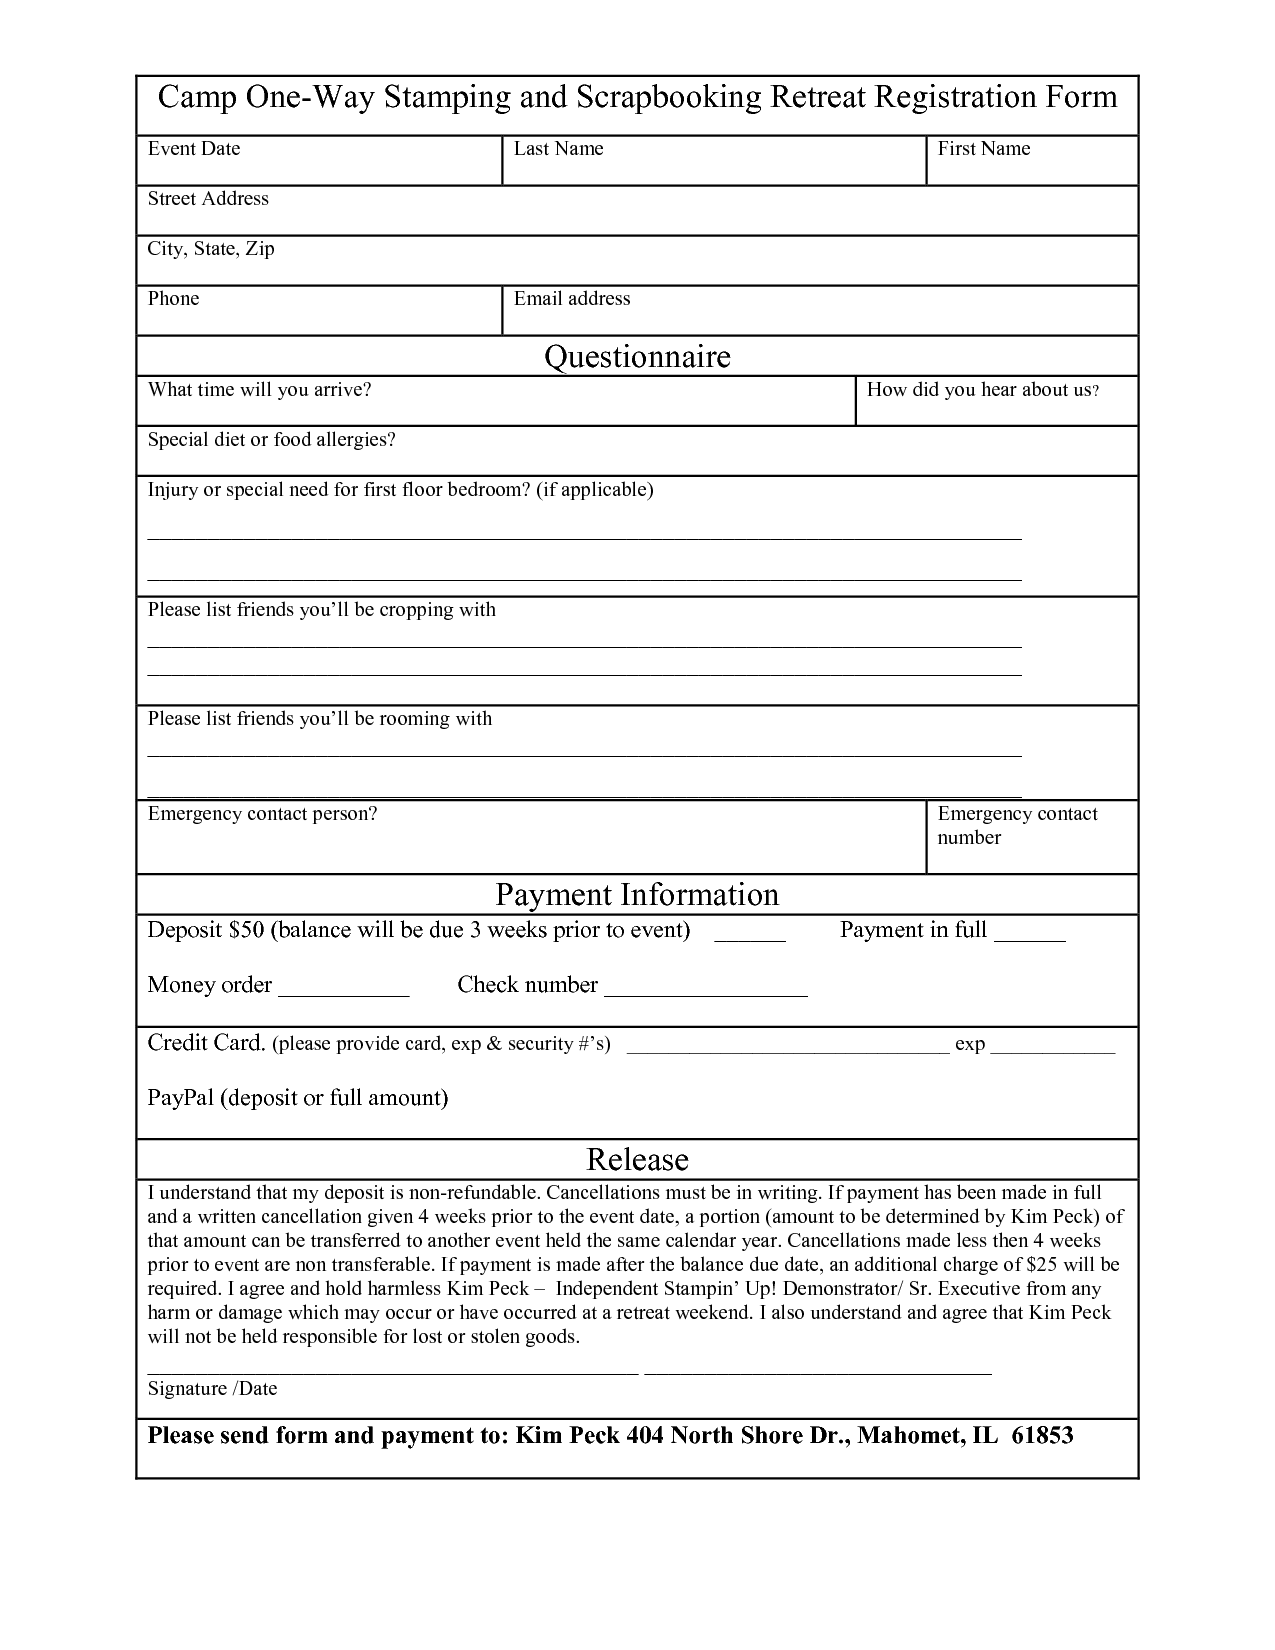 Application Packet For Free And Reduced Price School Meals Form